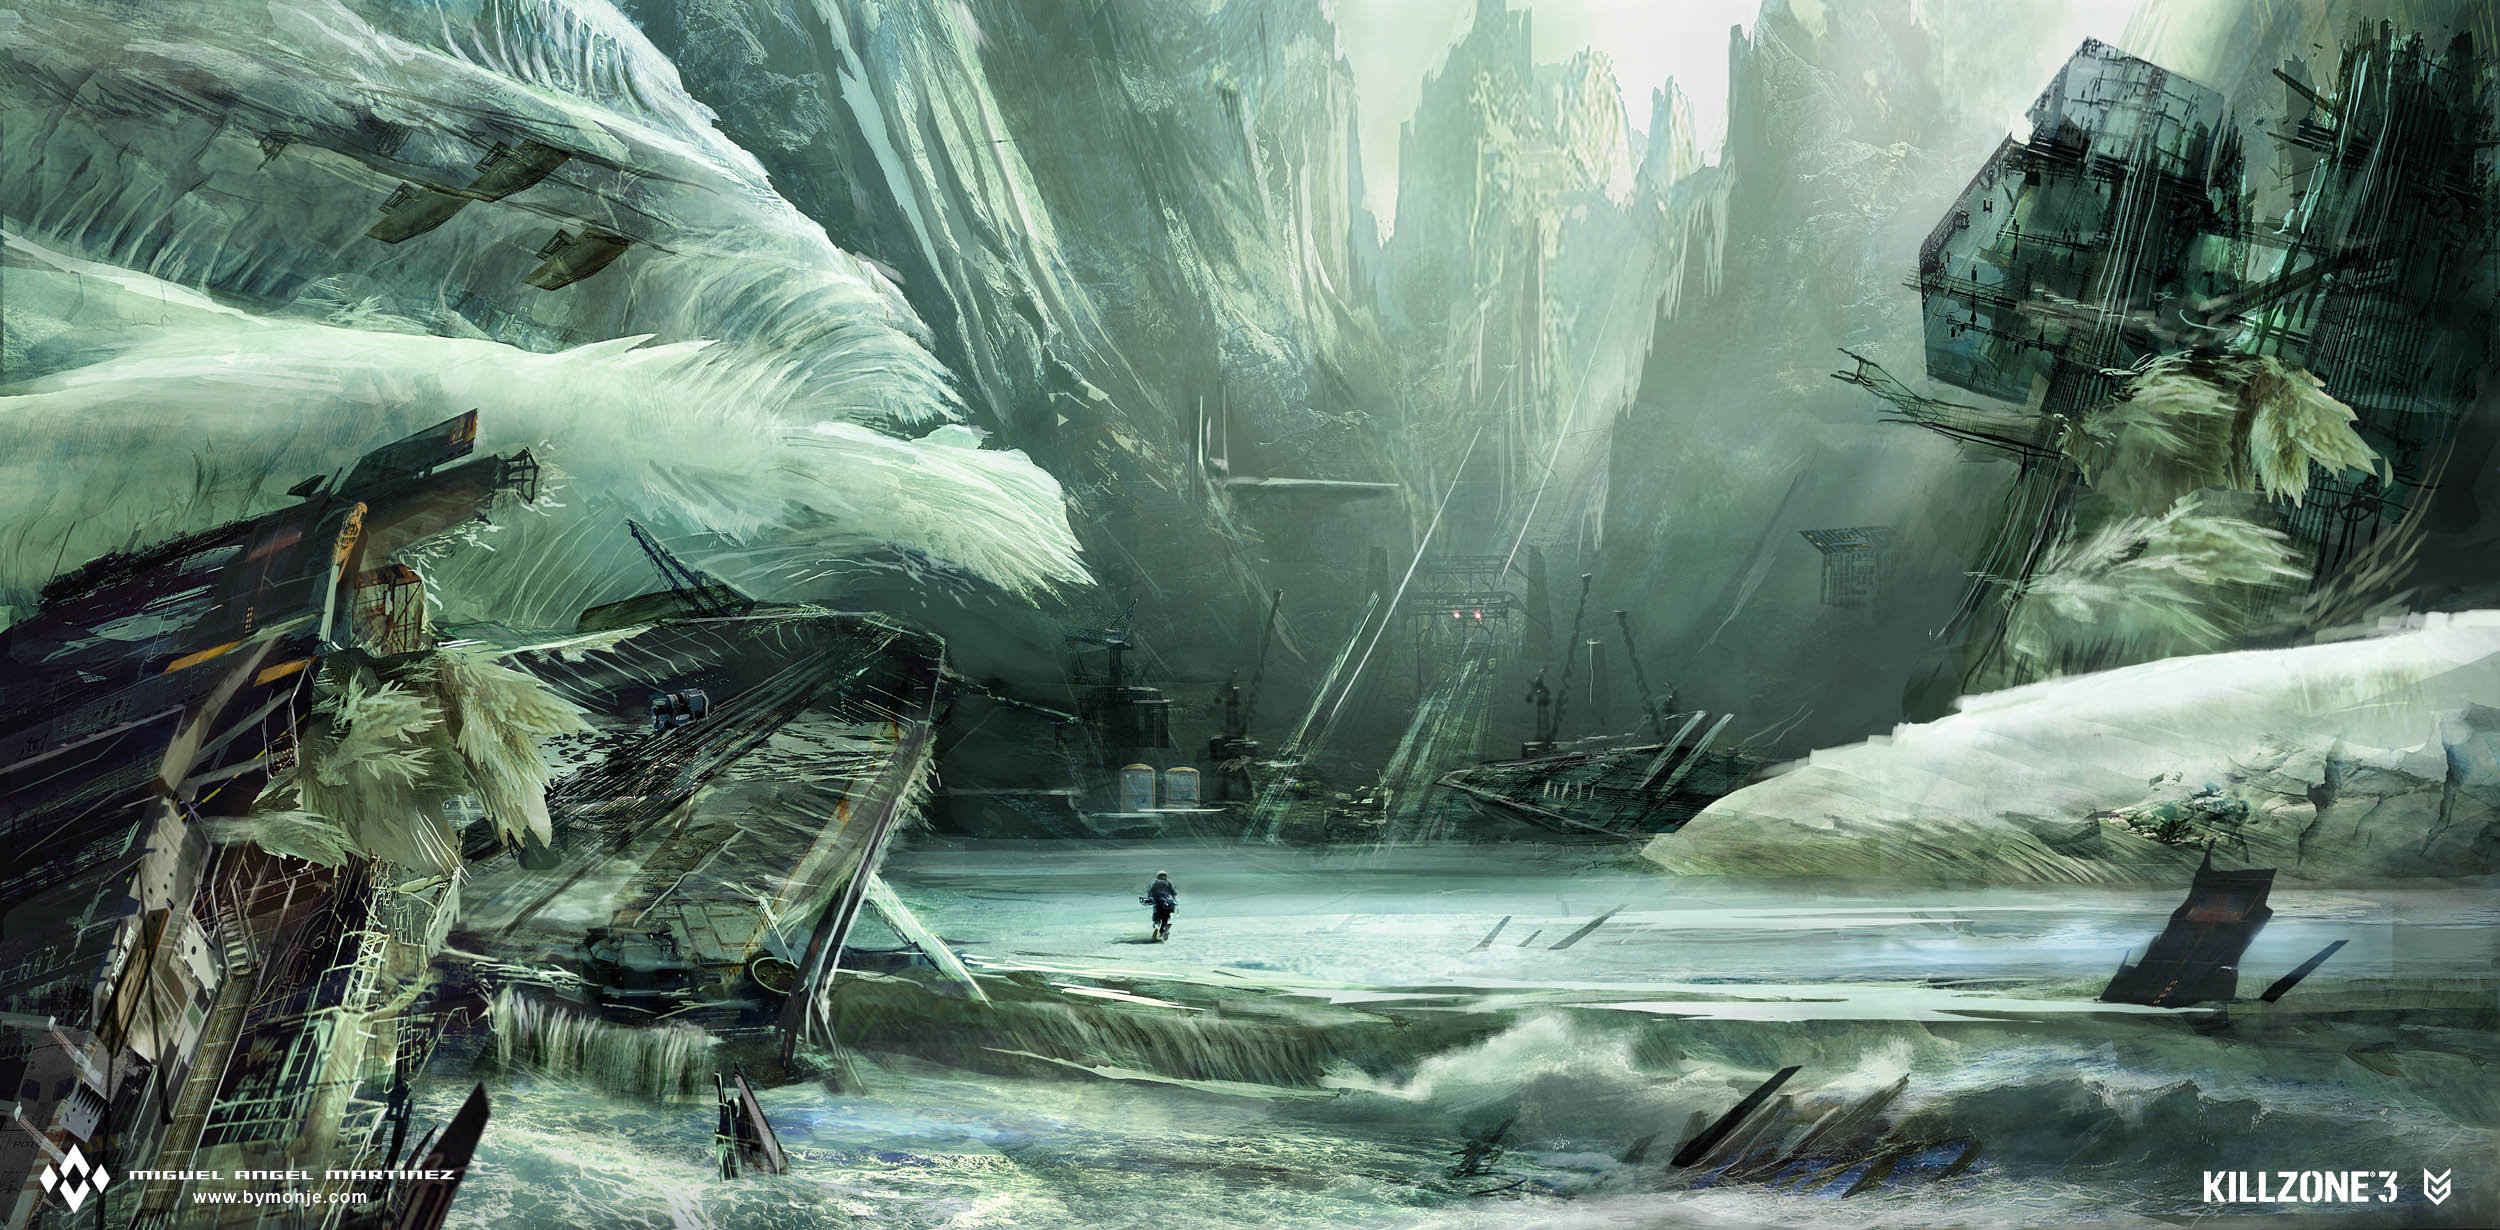 killzone-3-ice-wreck-concept-art-miguel-bymonje